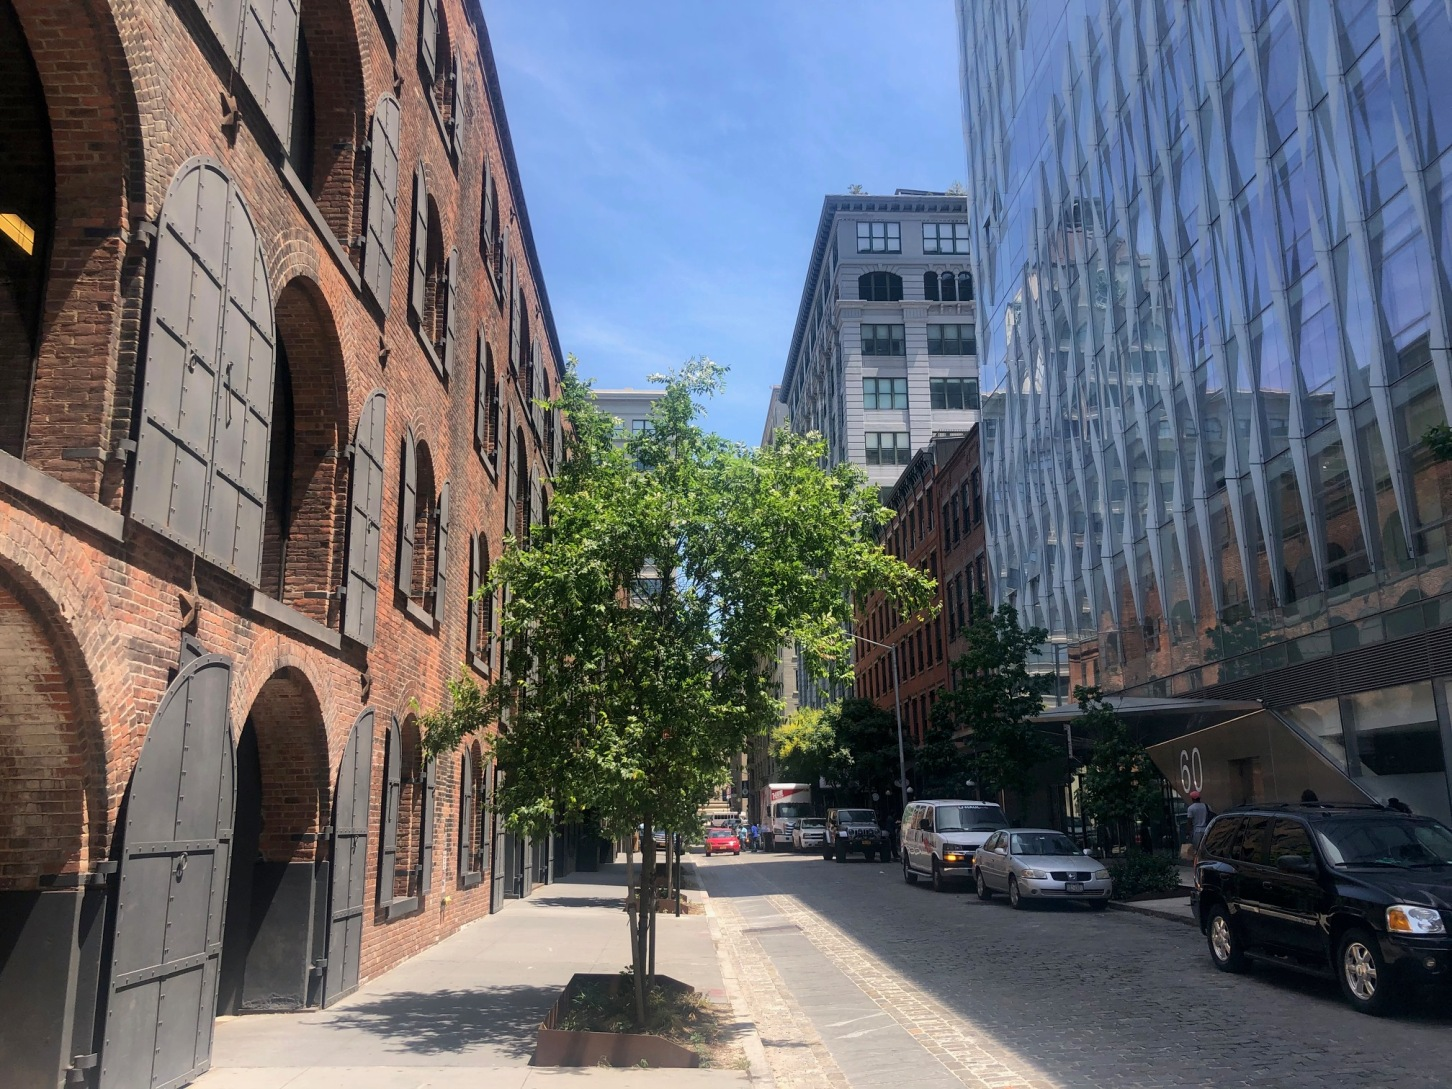 DUMBO – An Epicenter of Art and Creativity in Brooklyn